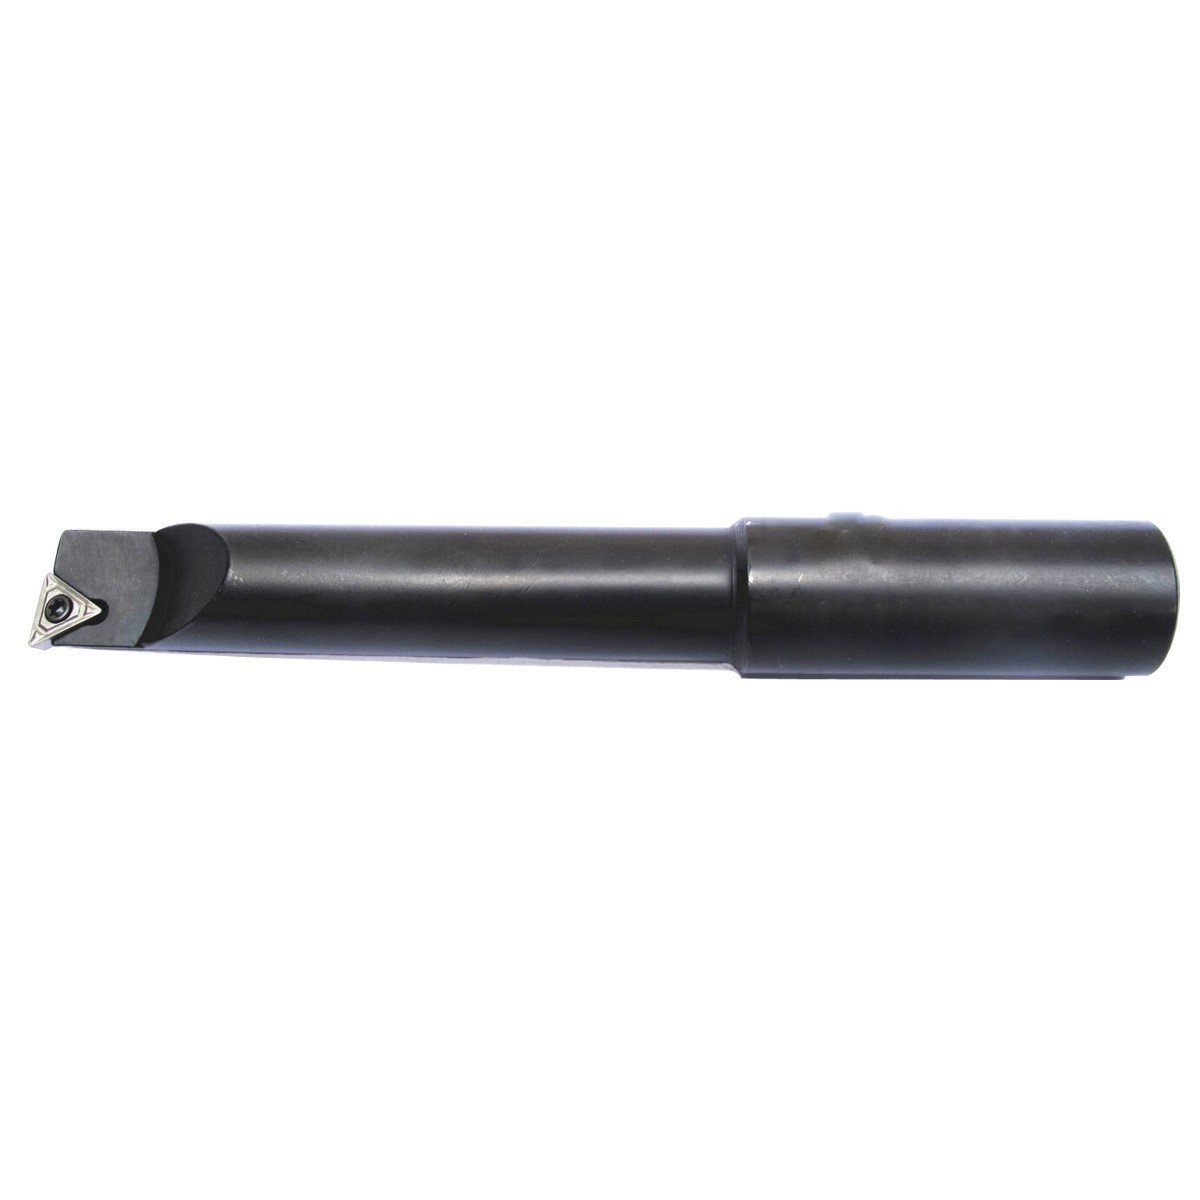 HHIP 1001-0743 Round Shank Indexable Boring Bar 3-5//8 x 1//2